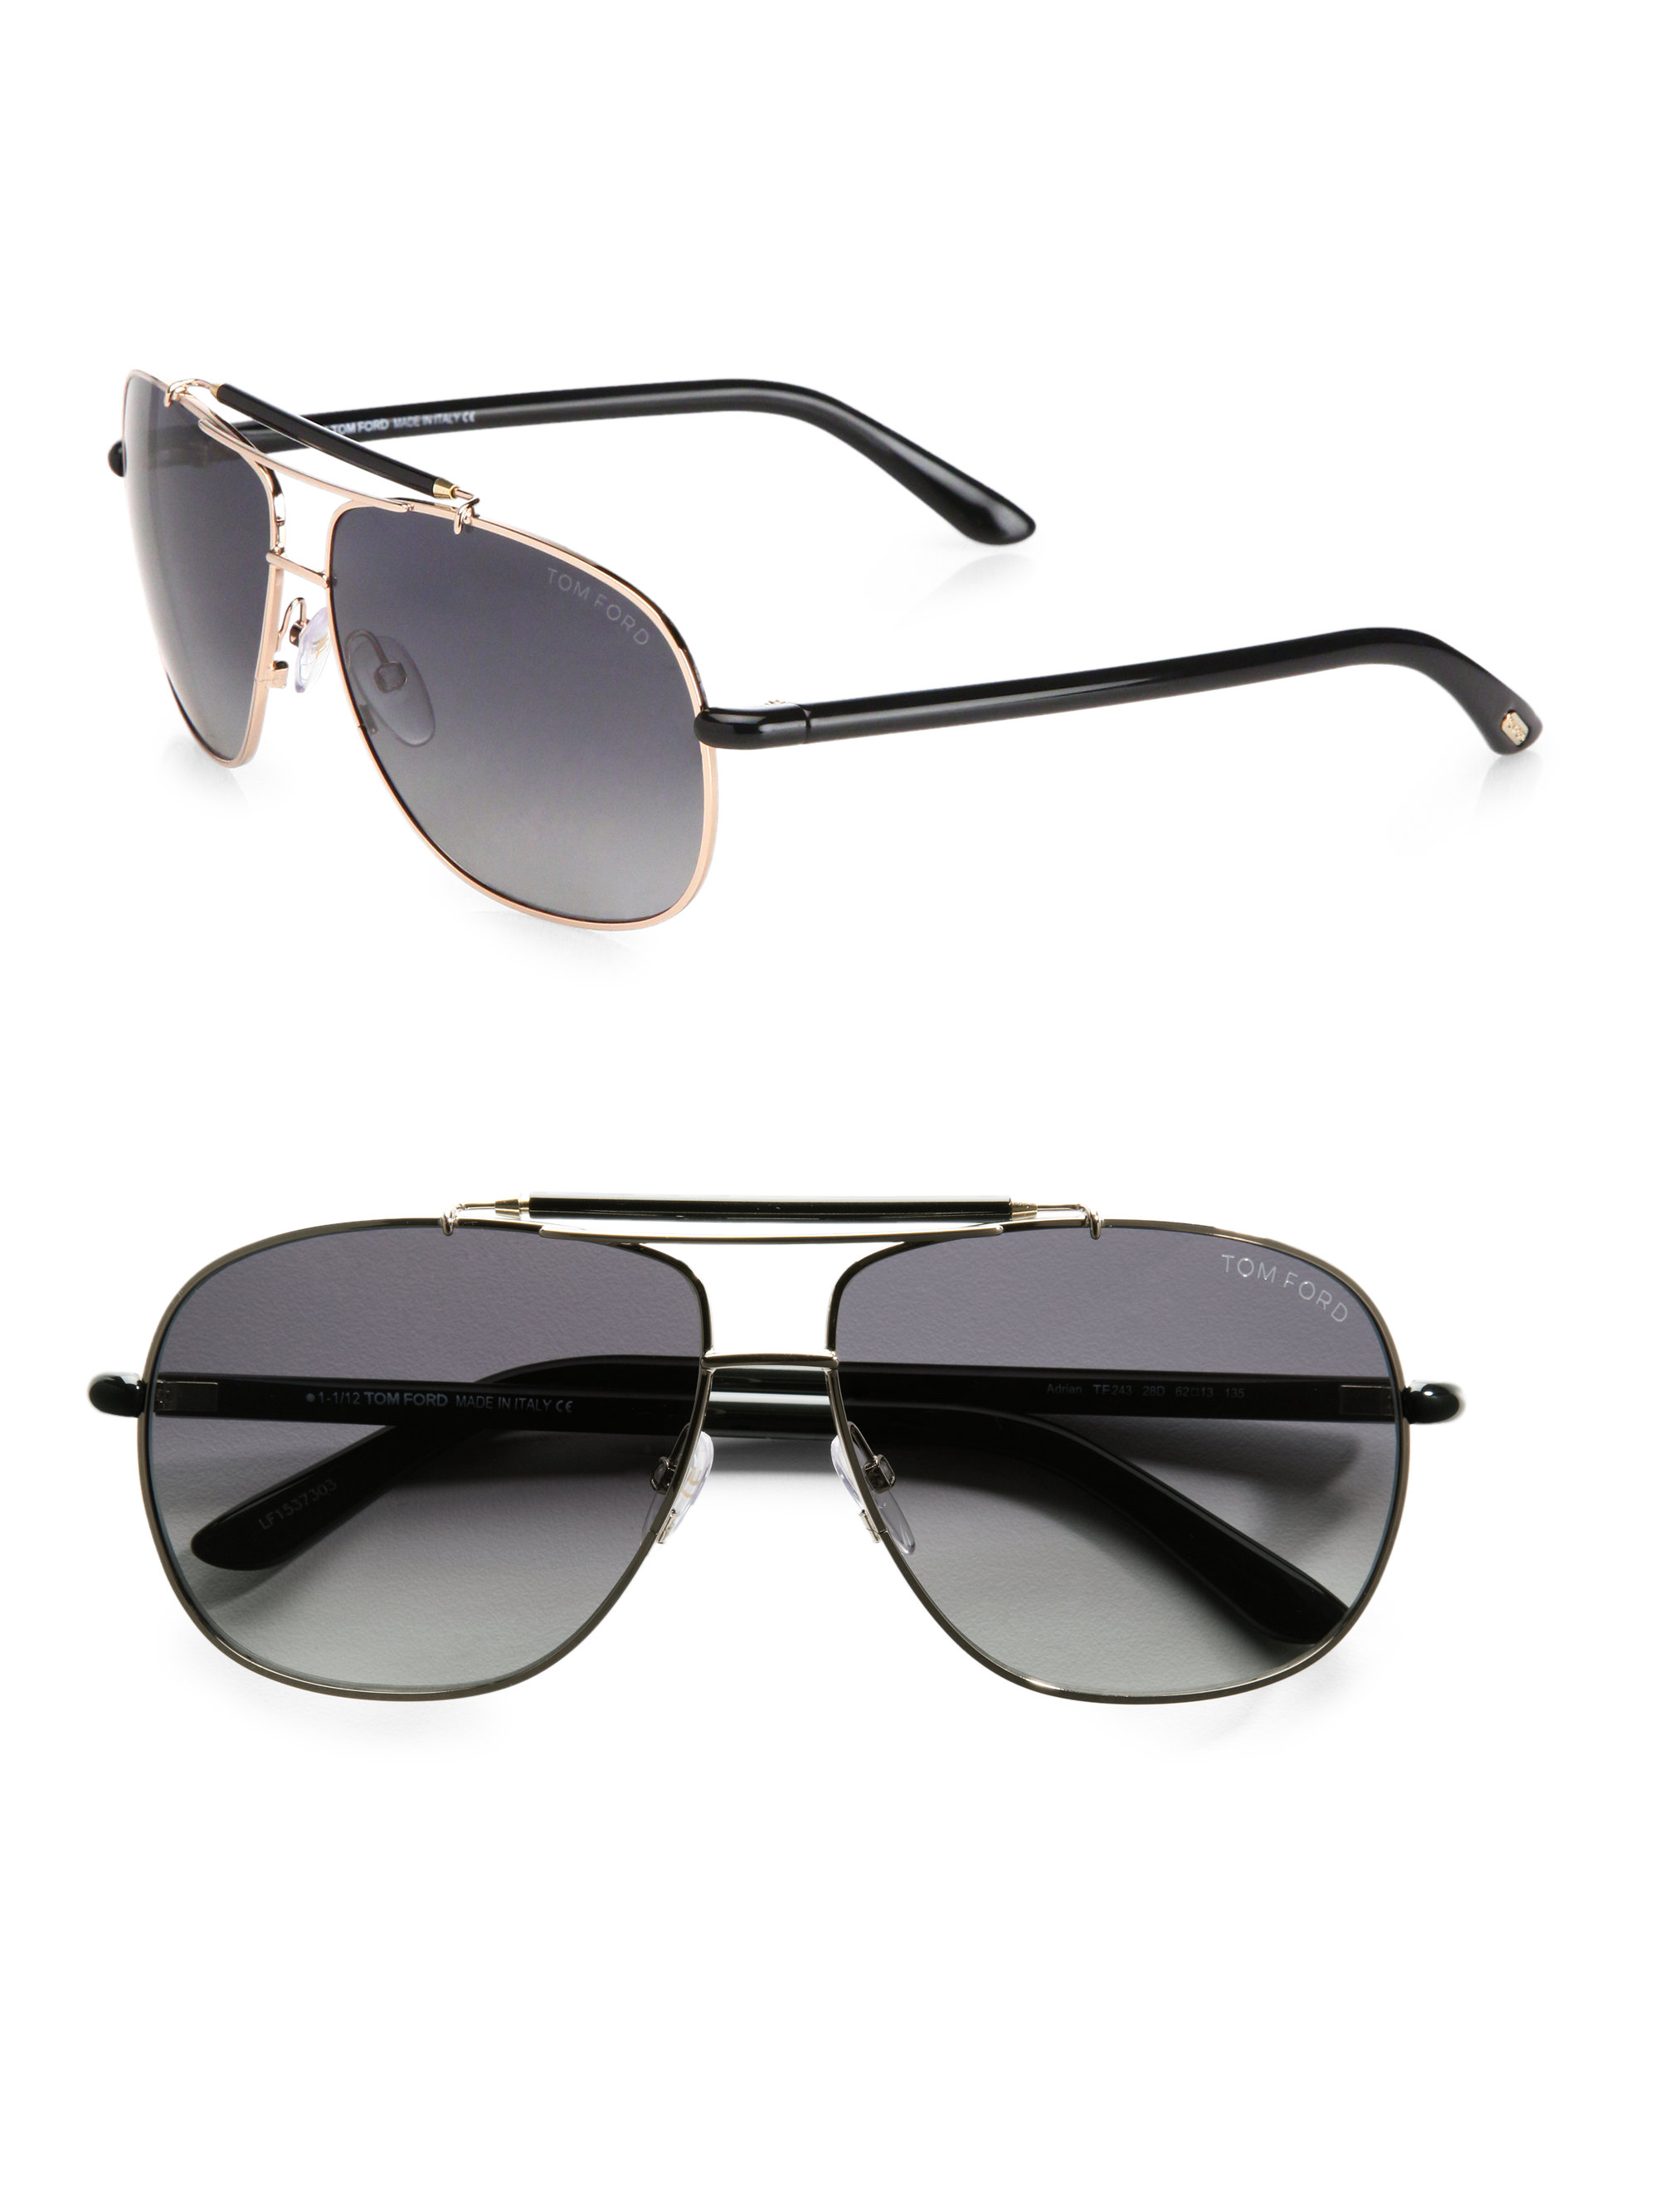 Tom Ford Z Metal Navigator Sunglasses In Black For Men Lyst